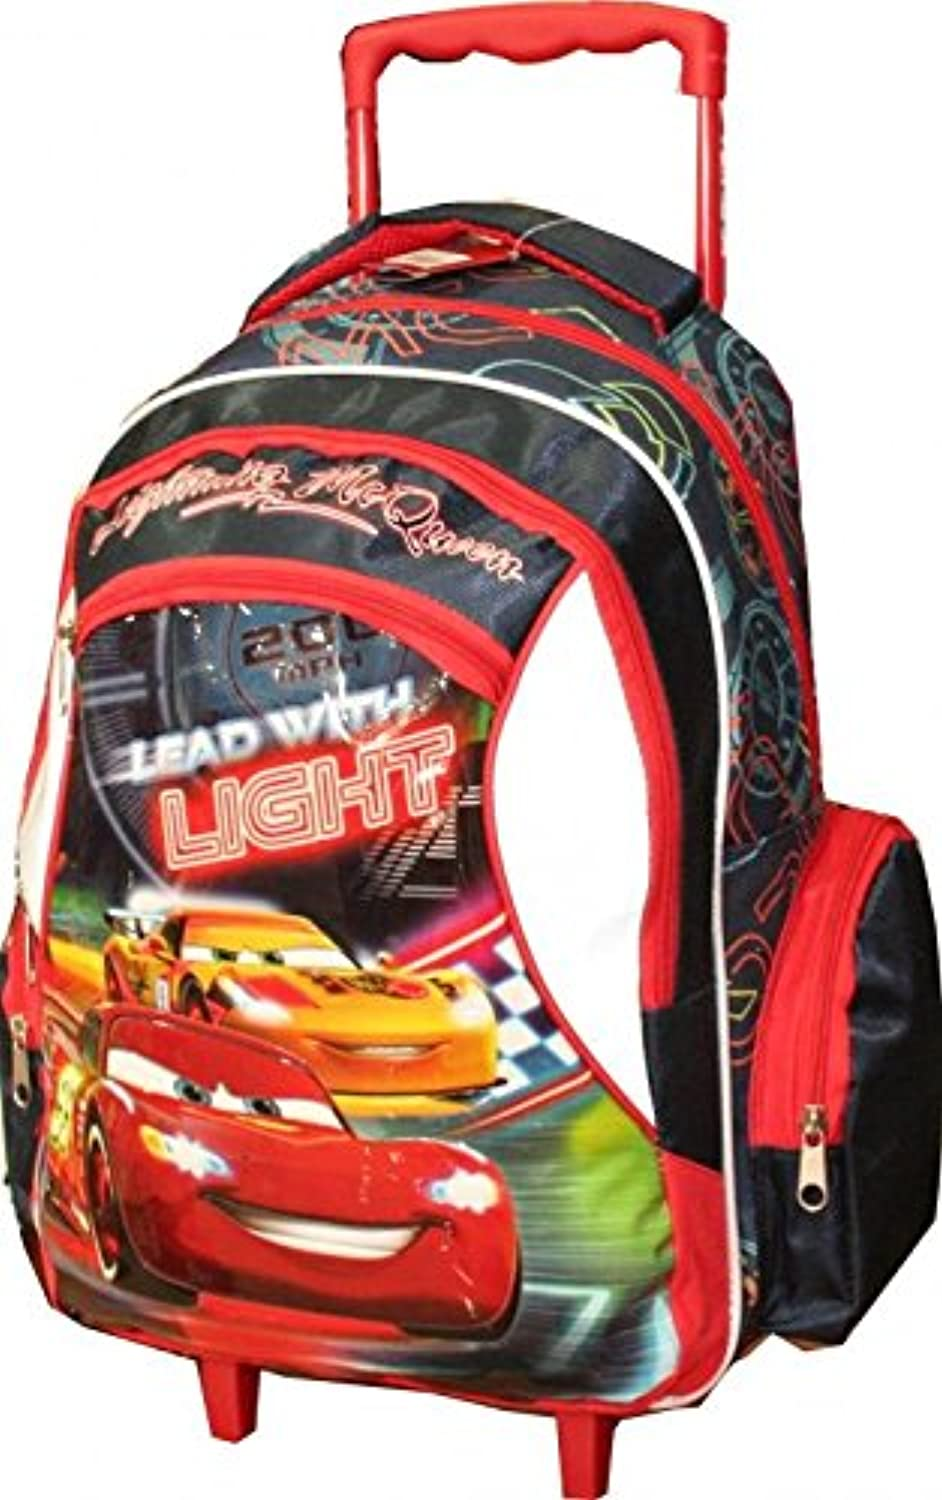 Cars  Huge School Backpack On Wheels LIGHTNING Mc QUEEN 18x12x8 Inch. Handles 2014 New Blistered